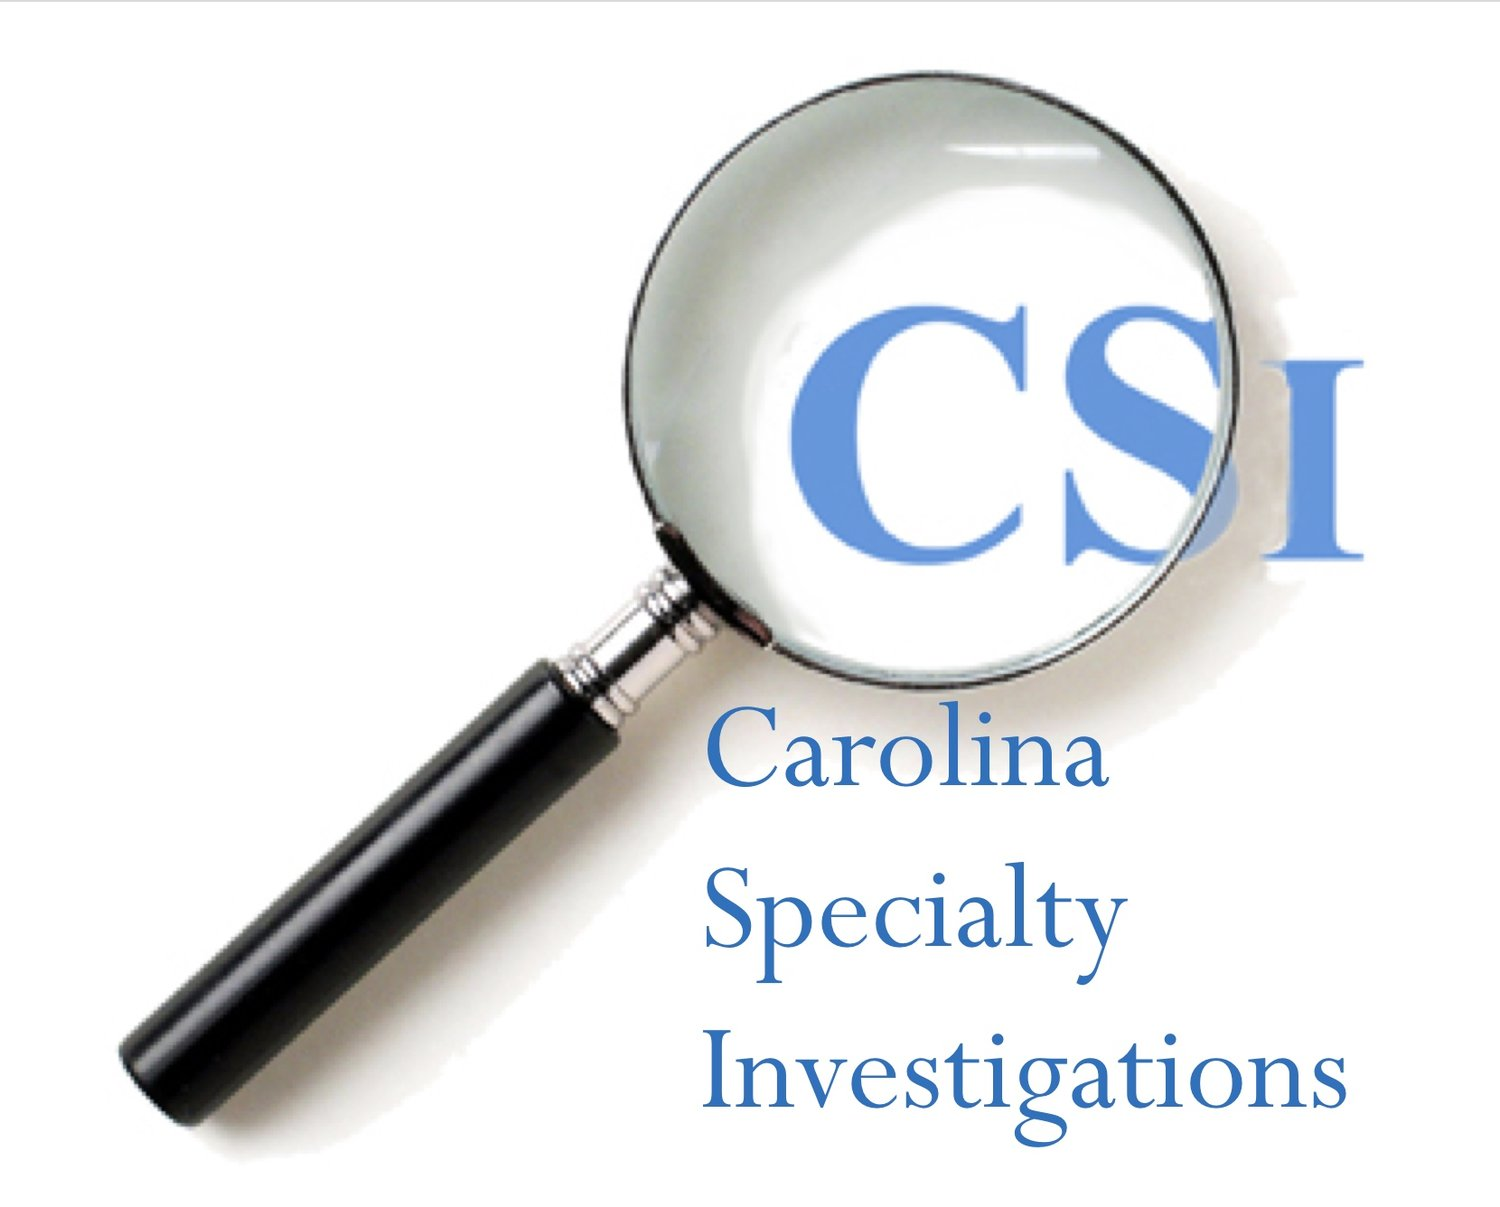 Carolina Specialty Investigations